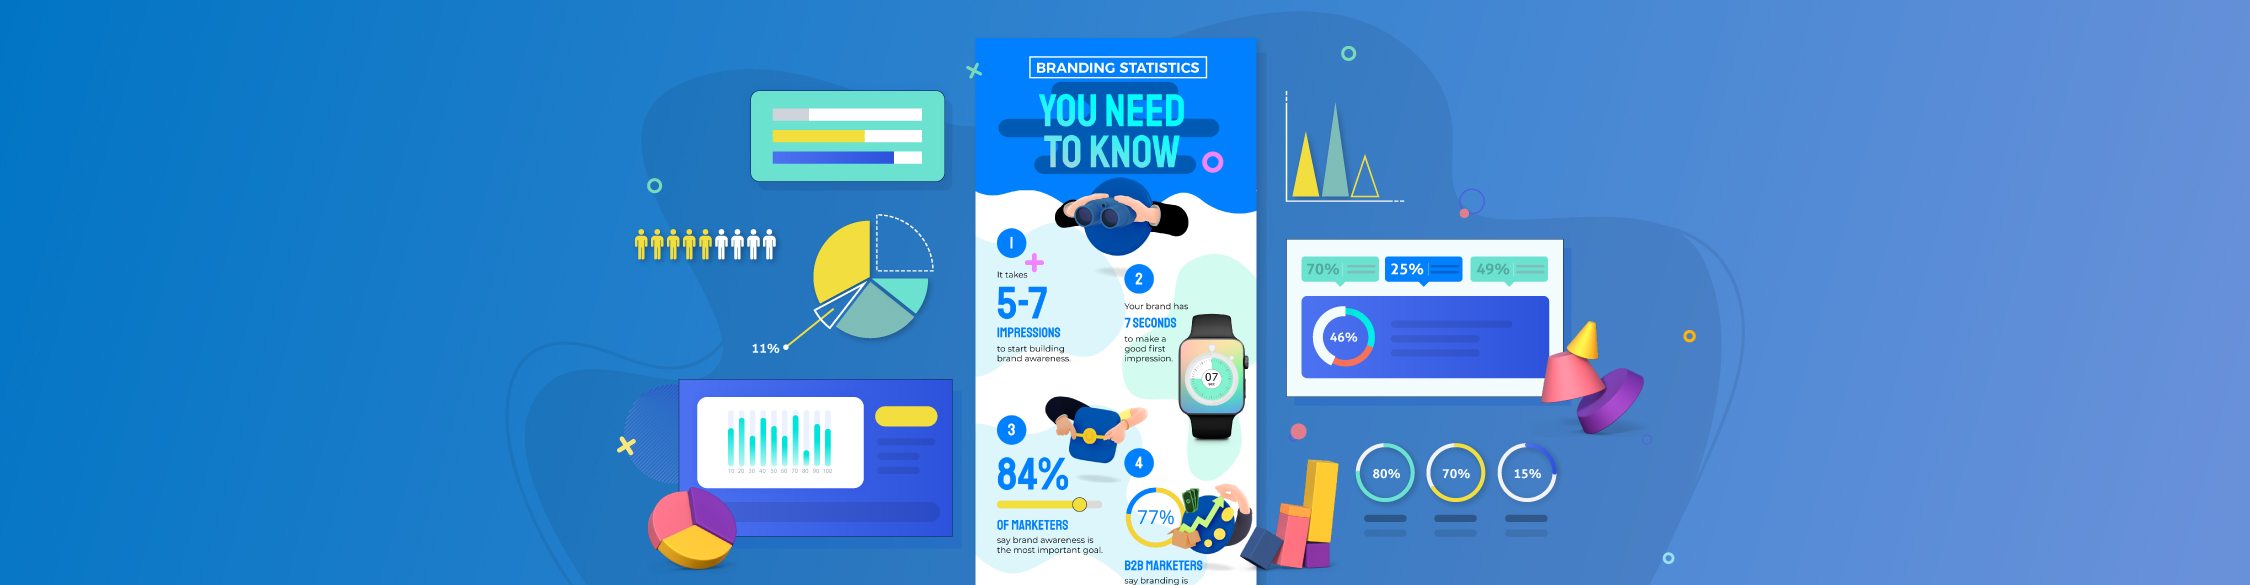 100+ Branding Statistics You Need to Know in 2021